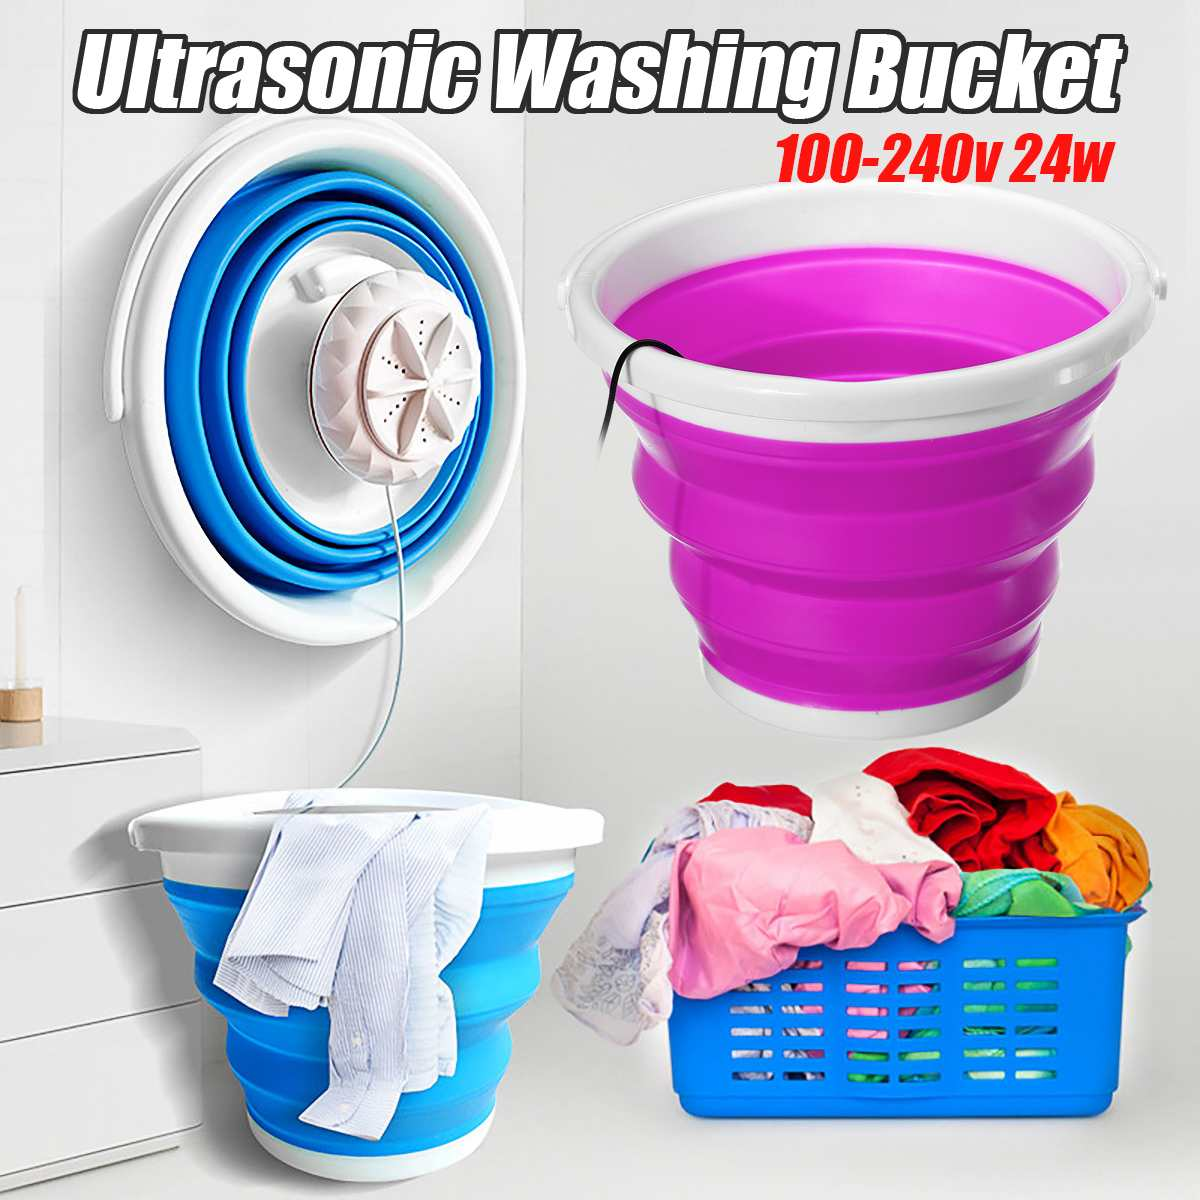 100-240v Mini Portable Ultrasonic Washing Machine Foldable Bucket Type USB Laundry Clothes Washer Cleaner for Home Travel image